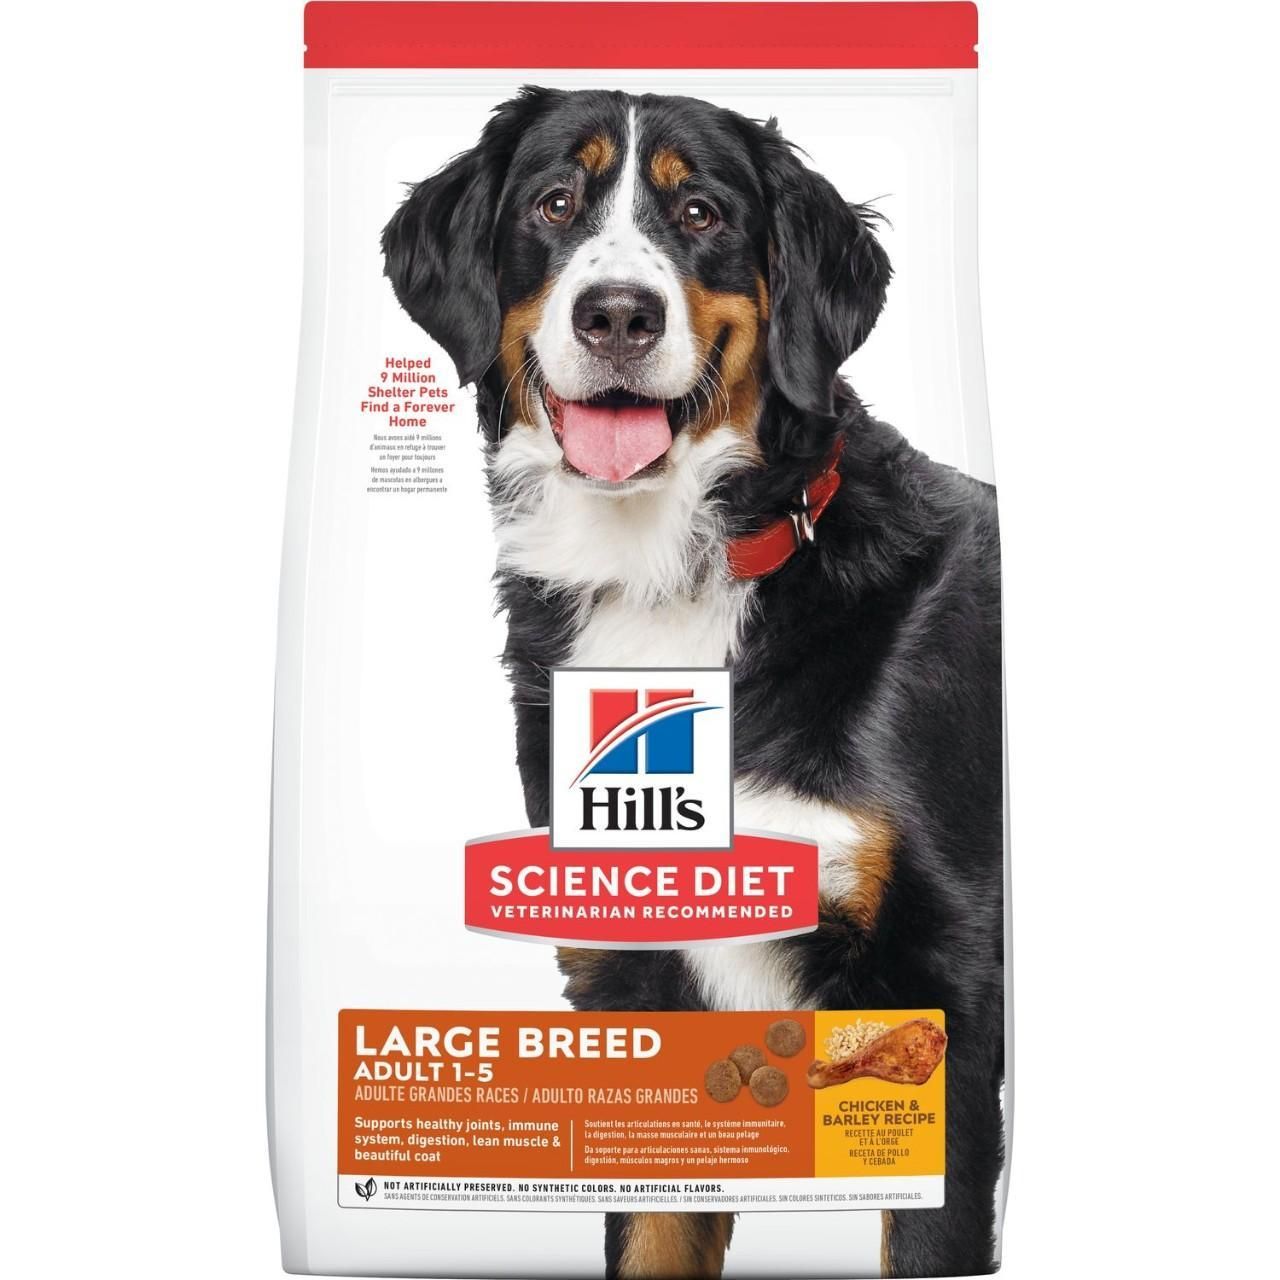 Hill's Science Diet Adult Large Breed Dry Dog Food, 35-lb bag